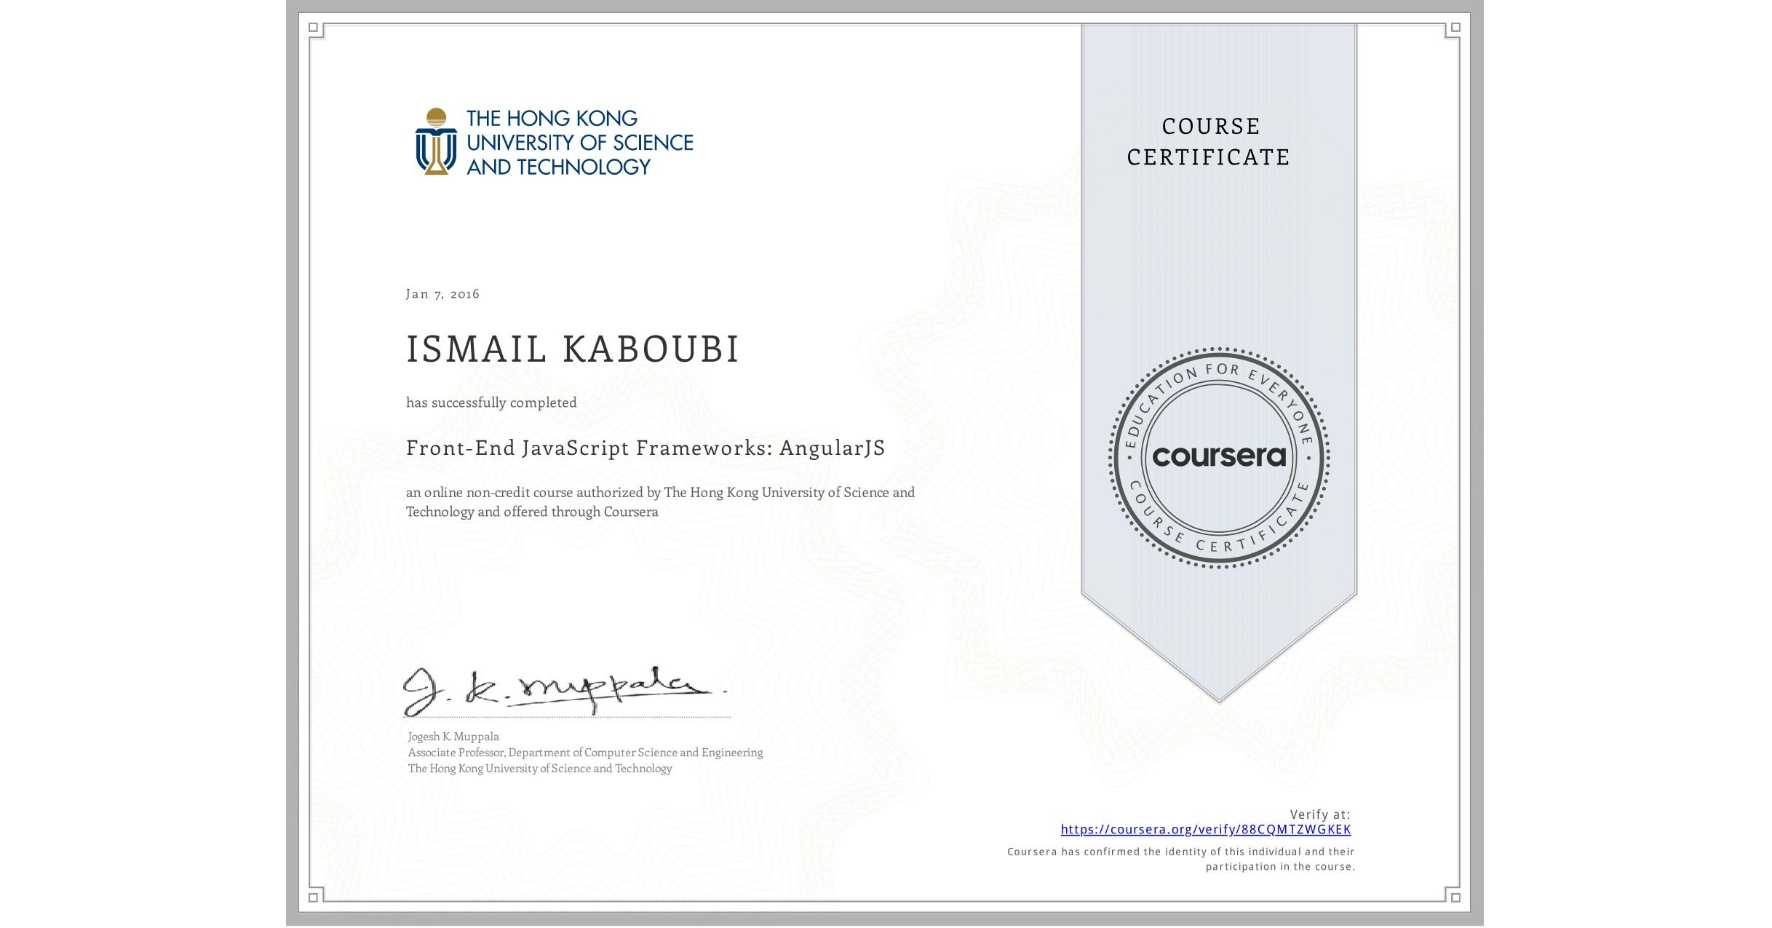 View certificate for ISMAIL KABOUBI, Front-End JavaScript Frameworks: AngularJS, an online non-credit course authorized by The Hong Kong University of Science and Technology and offered through Coursera